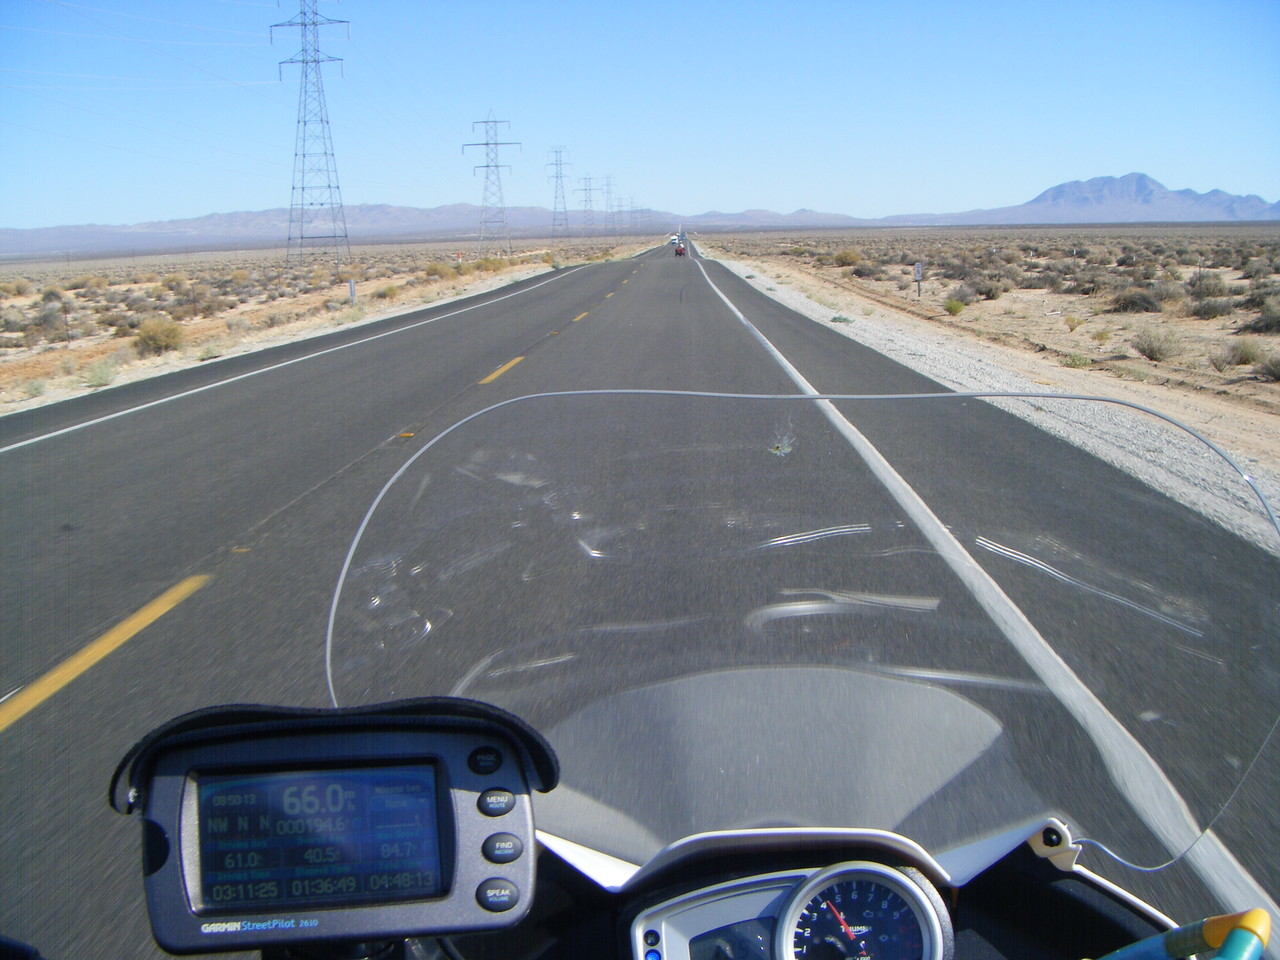 Lining up north on the 395 to Owens Lake for the nite